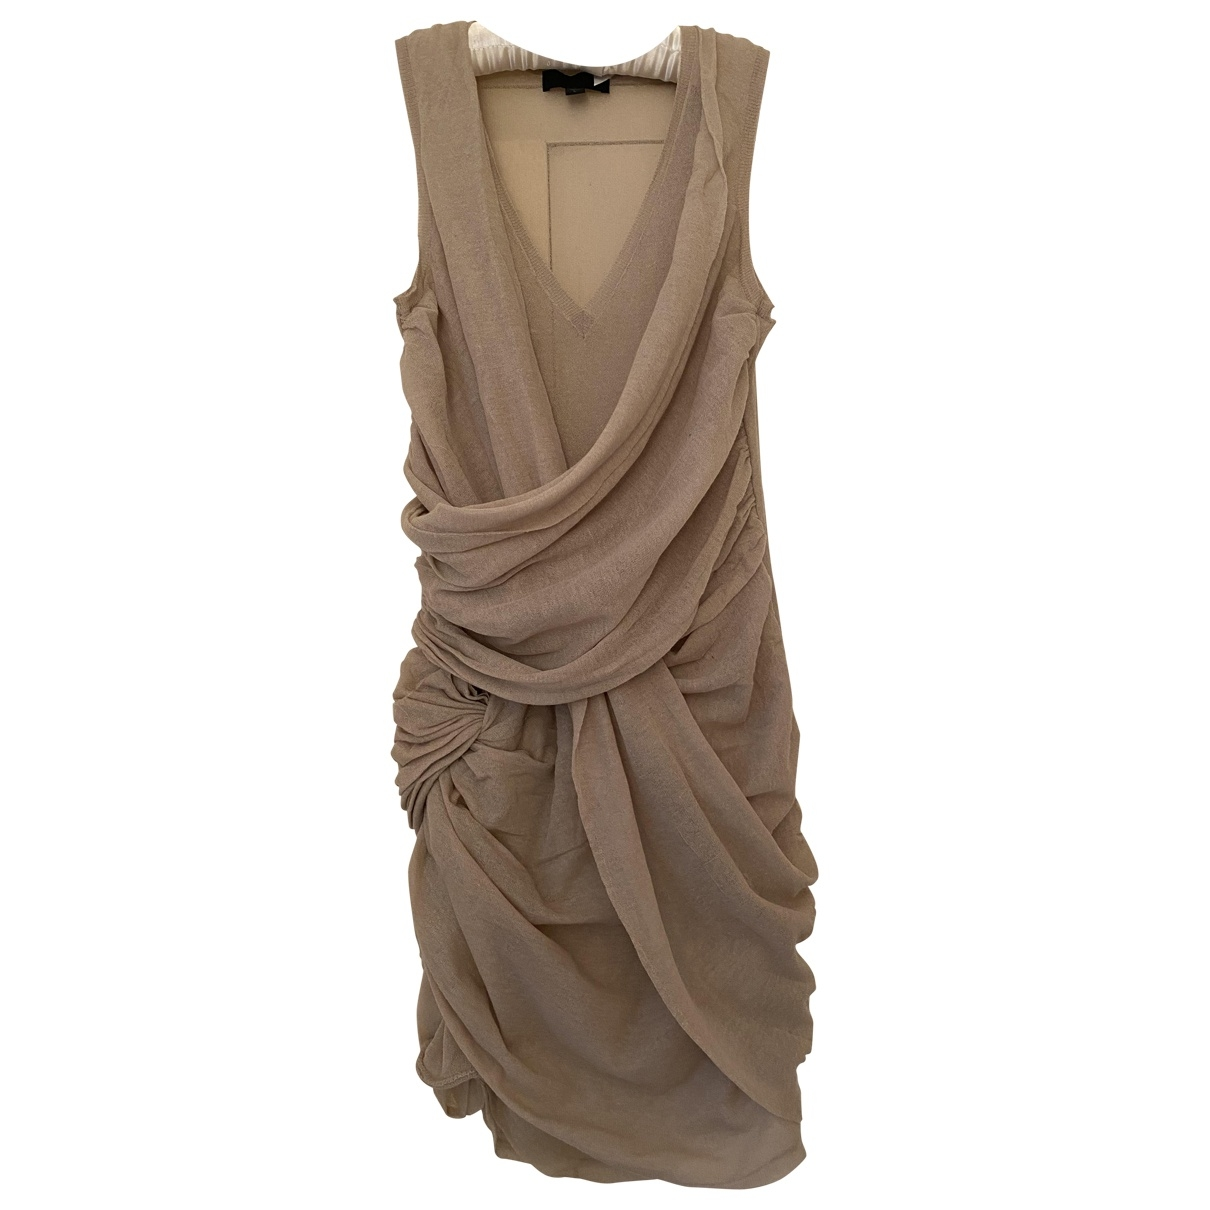 Burberry \N Beige Cotton - elasthane dress for Women 42 IT